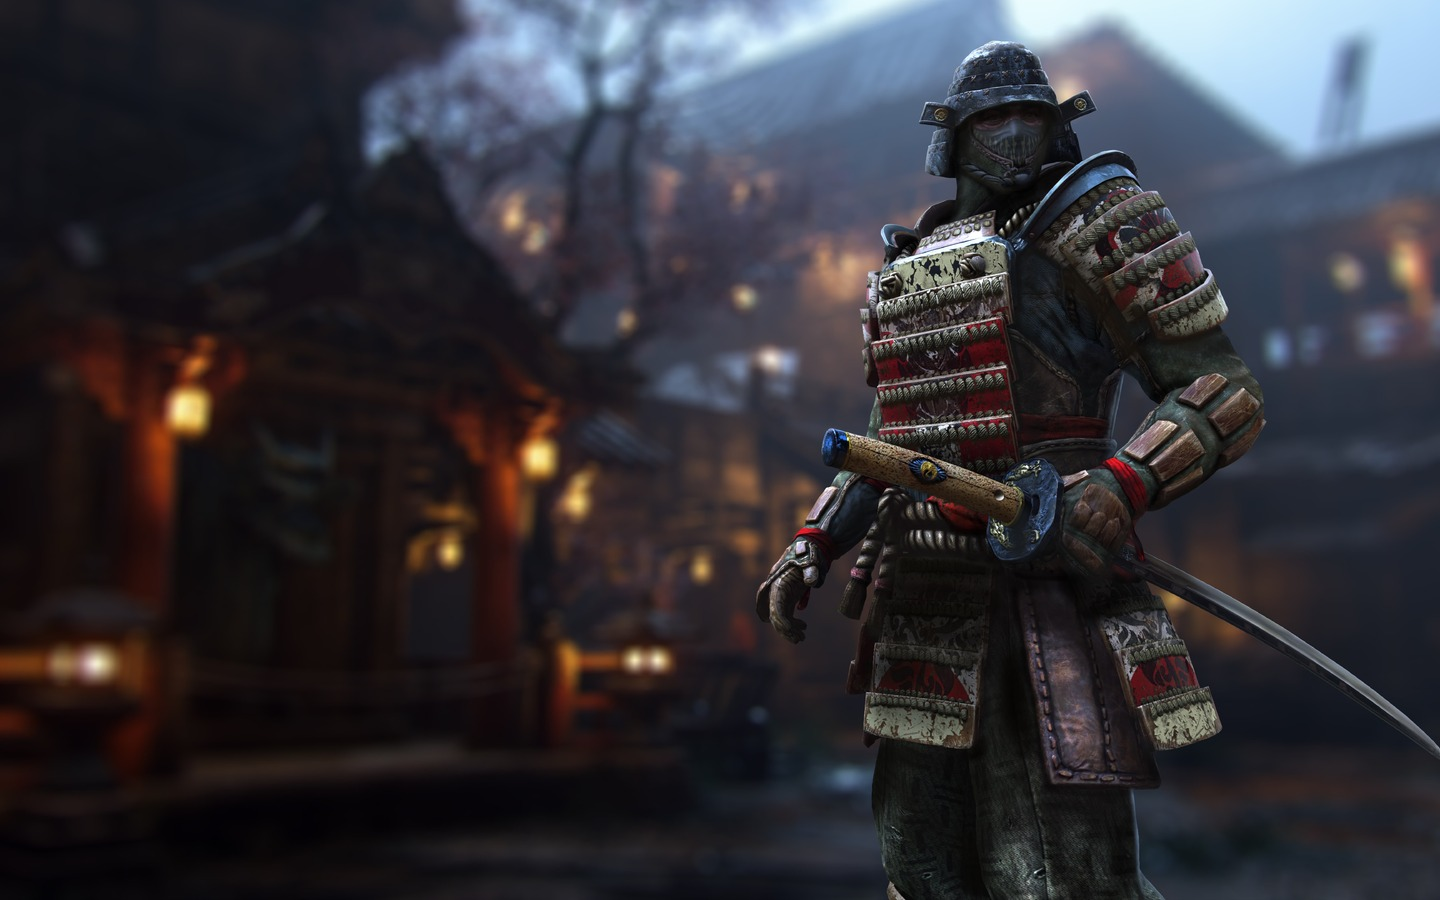 1440x900 For Honor Hd 1440x900 Resolution Hd 4k Wallpapers Images